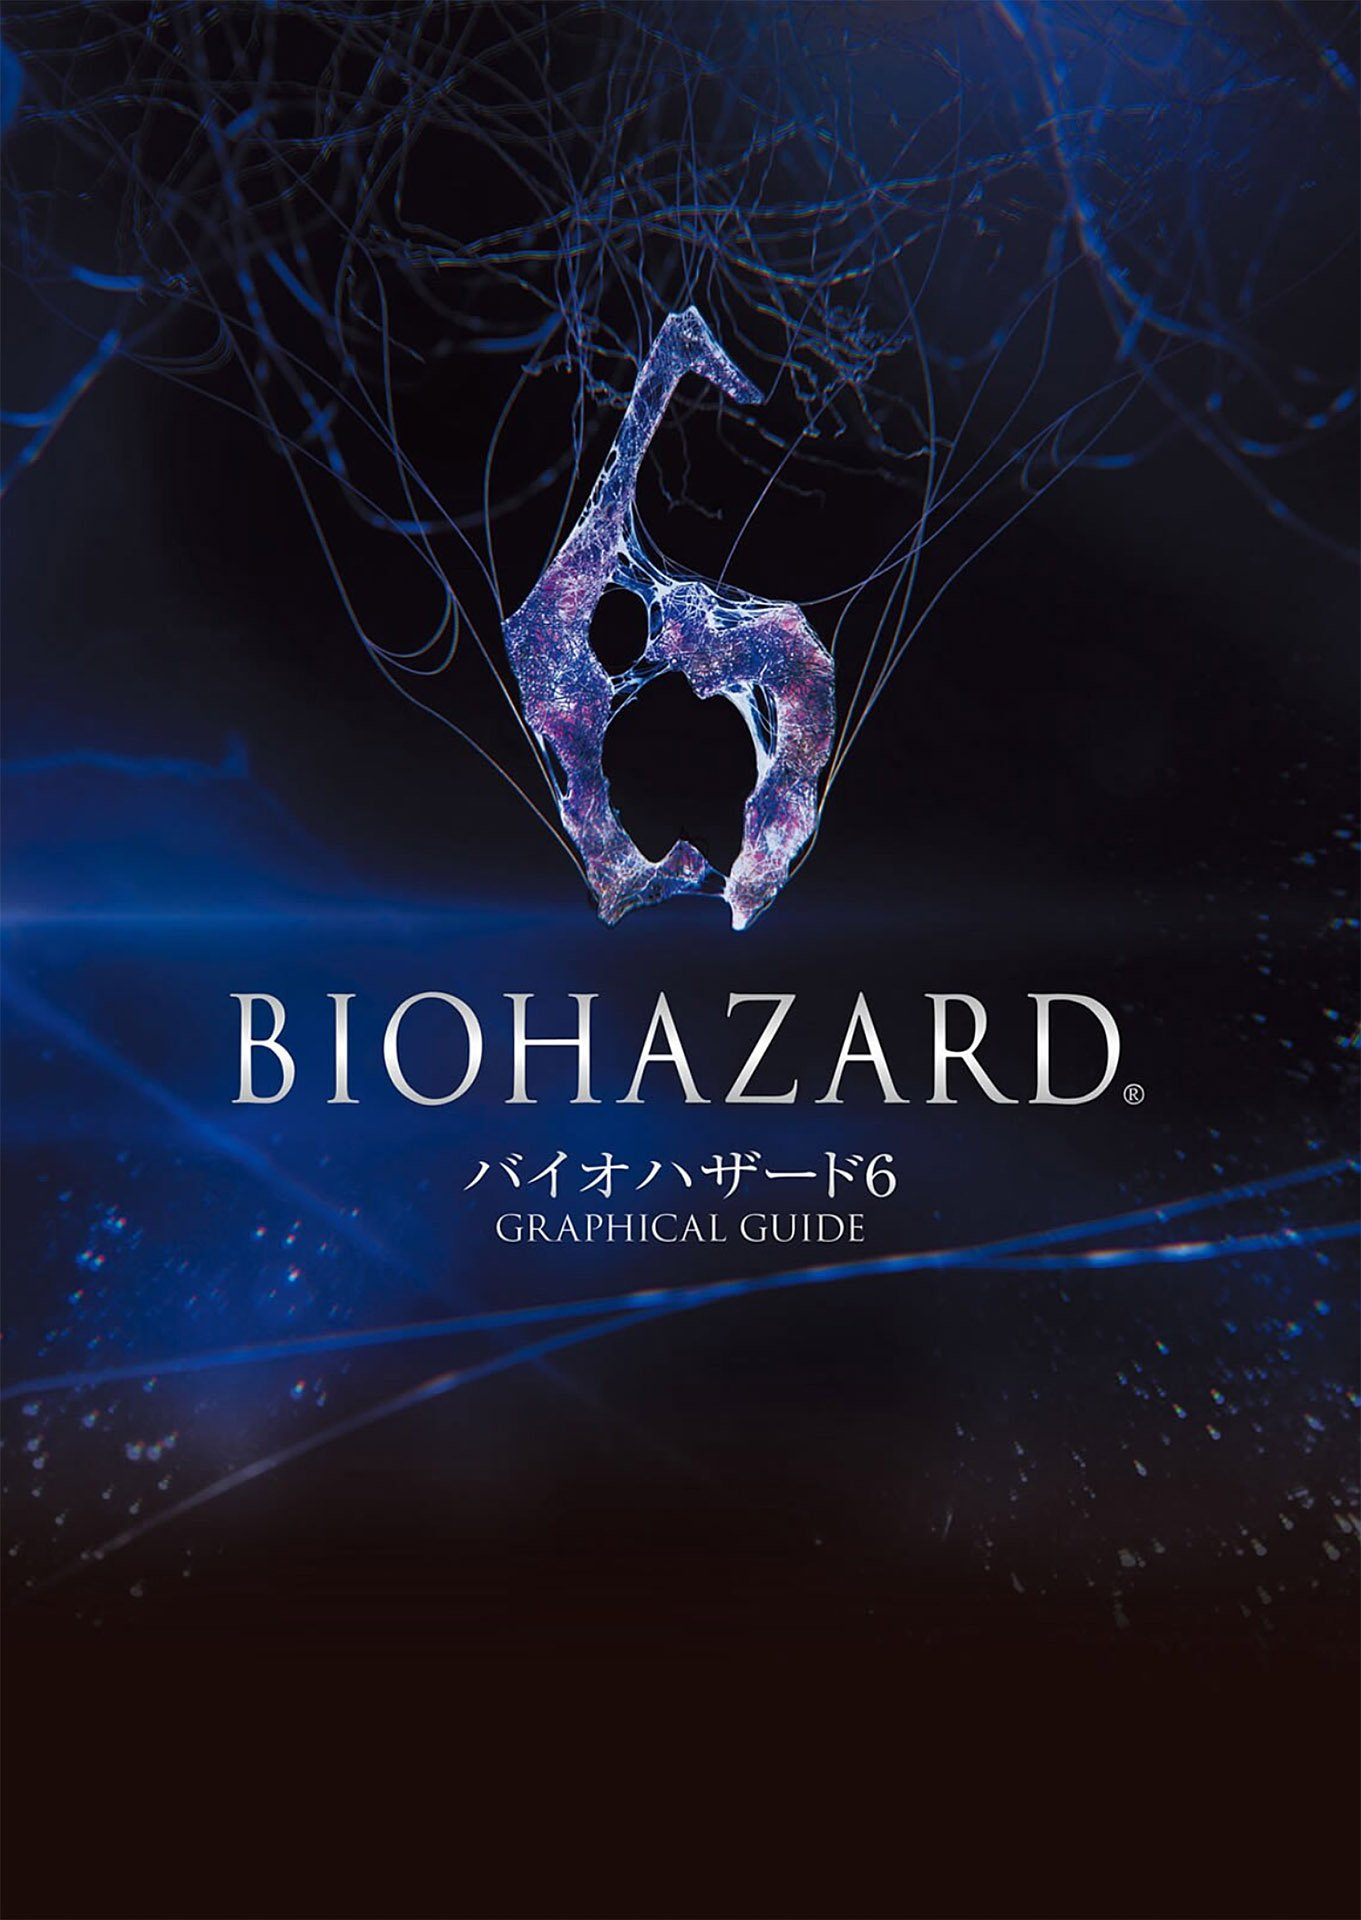 BIOHAZARD 6 - Graphical Guide